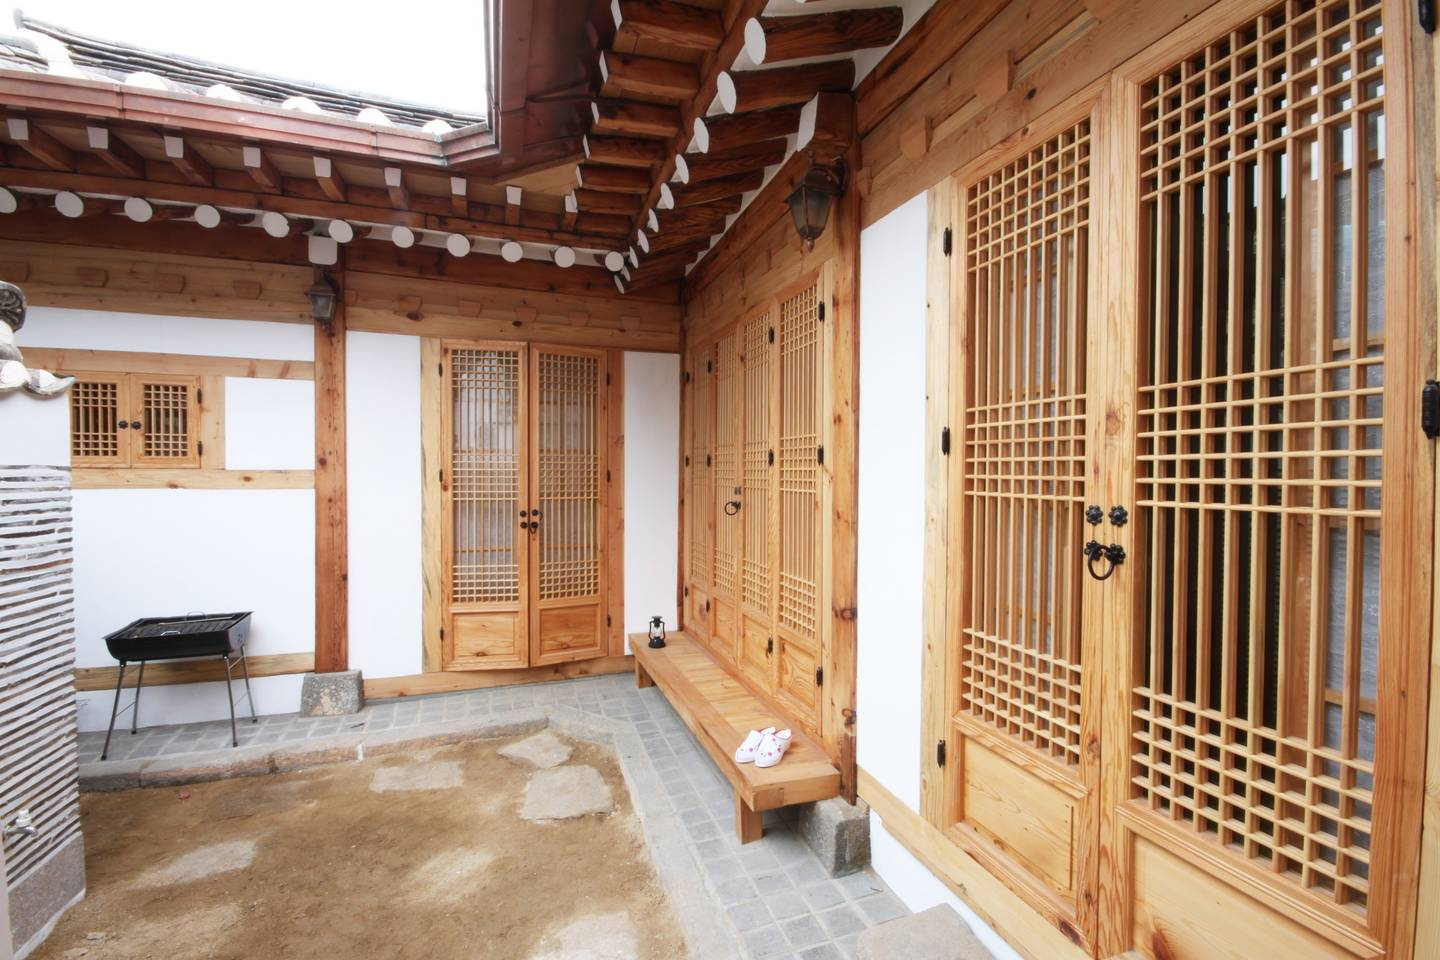 Coolest vacations to take with the kids: A traditional Korean Hanok on AirBnB